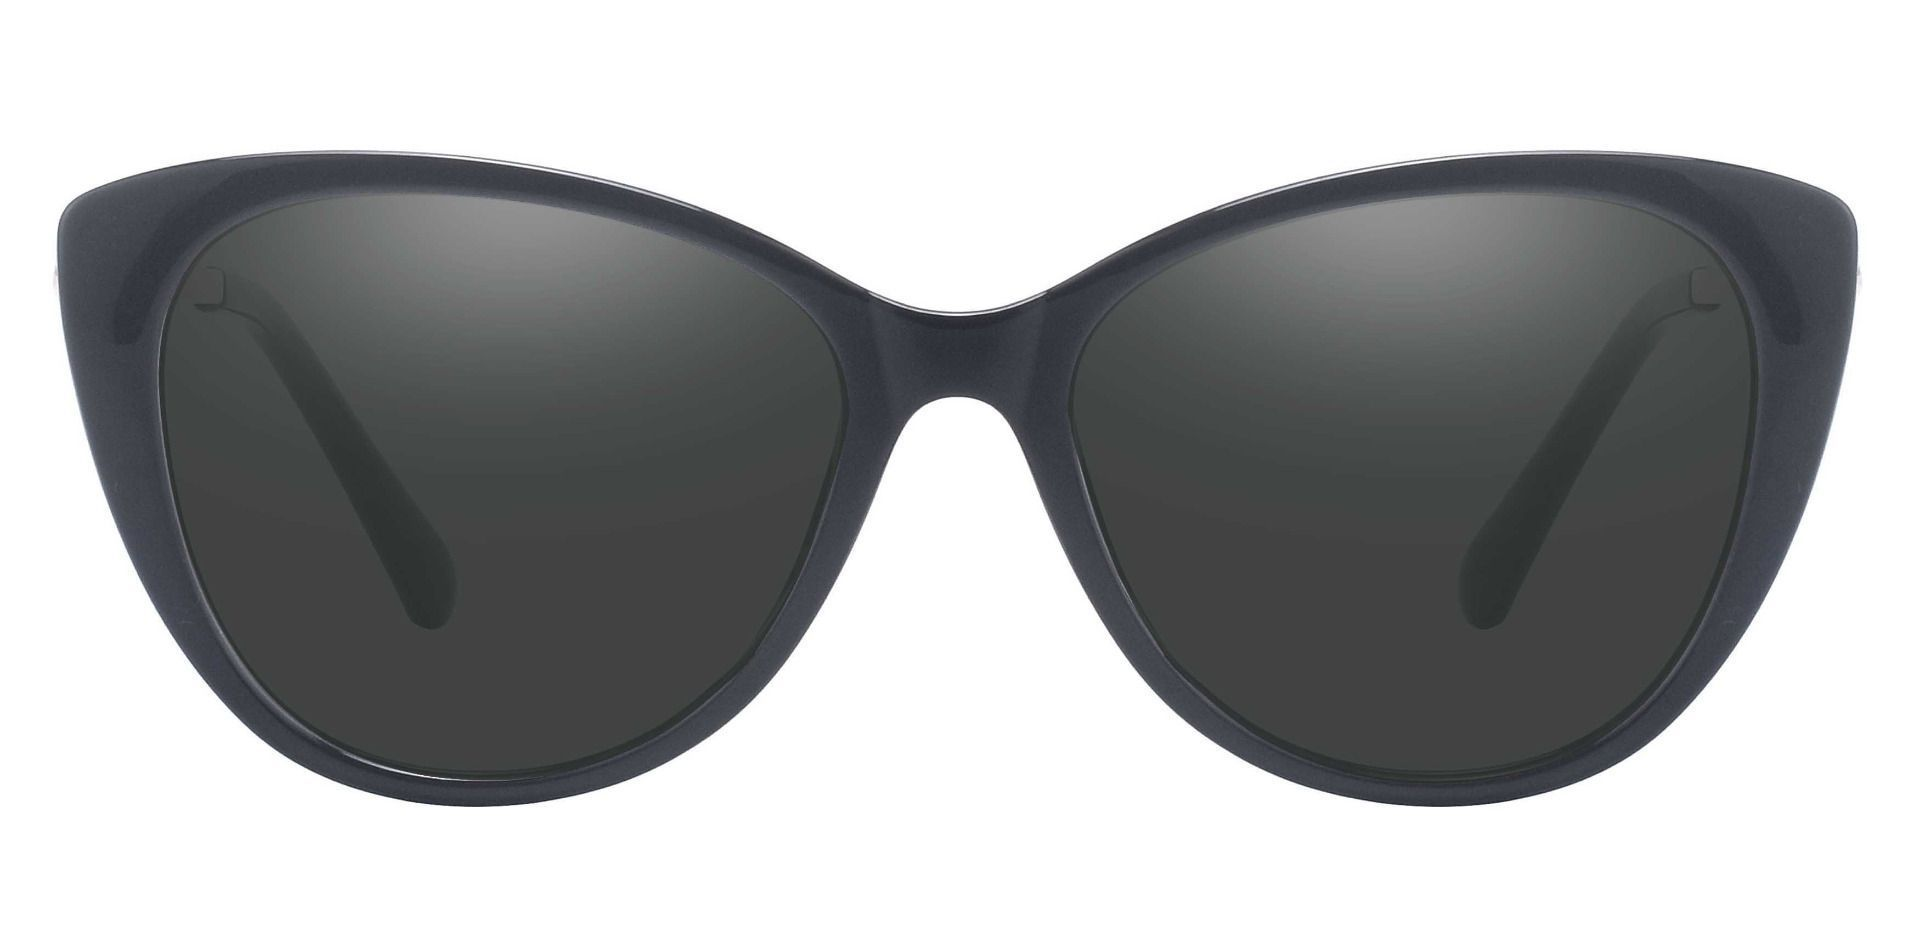 Roma Cat Eye Prescription Sunglasses - Black Frame With Gray Lenses